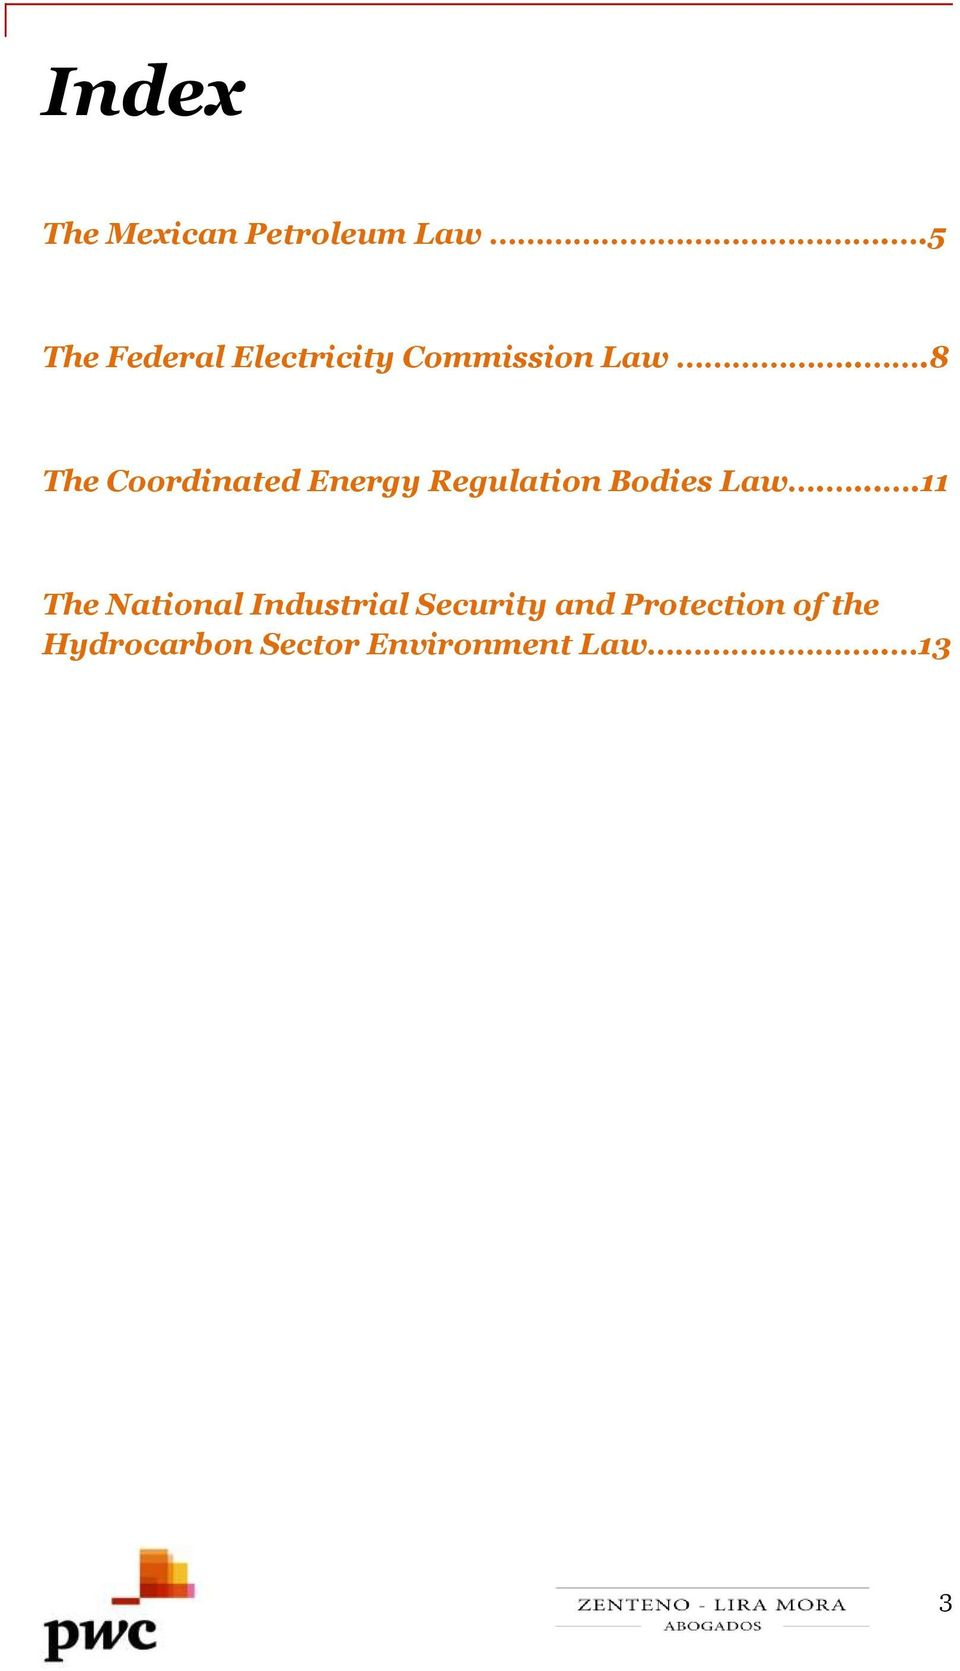 ..8 The Coordinated Energy Regulation Bodies Law.